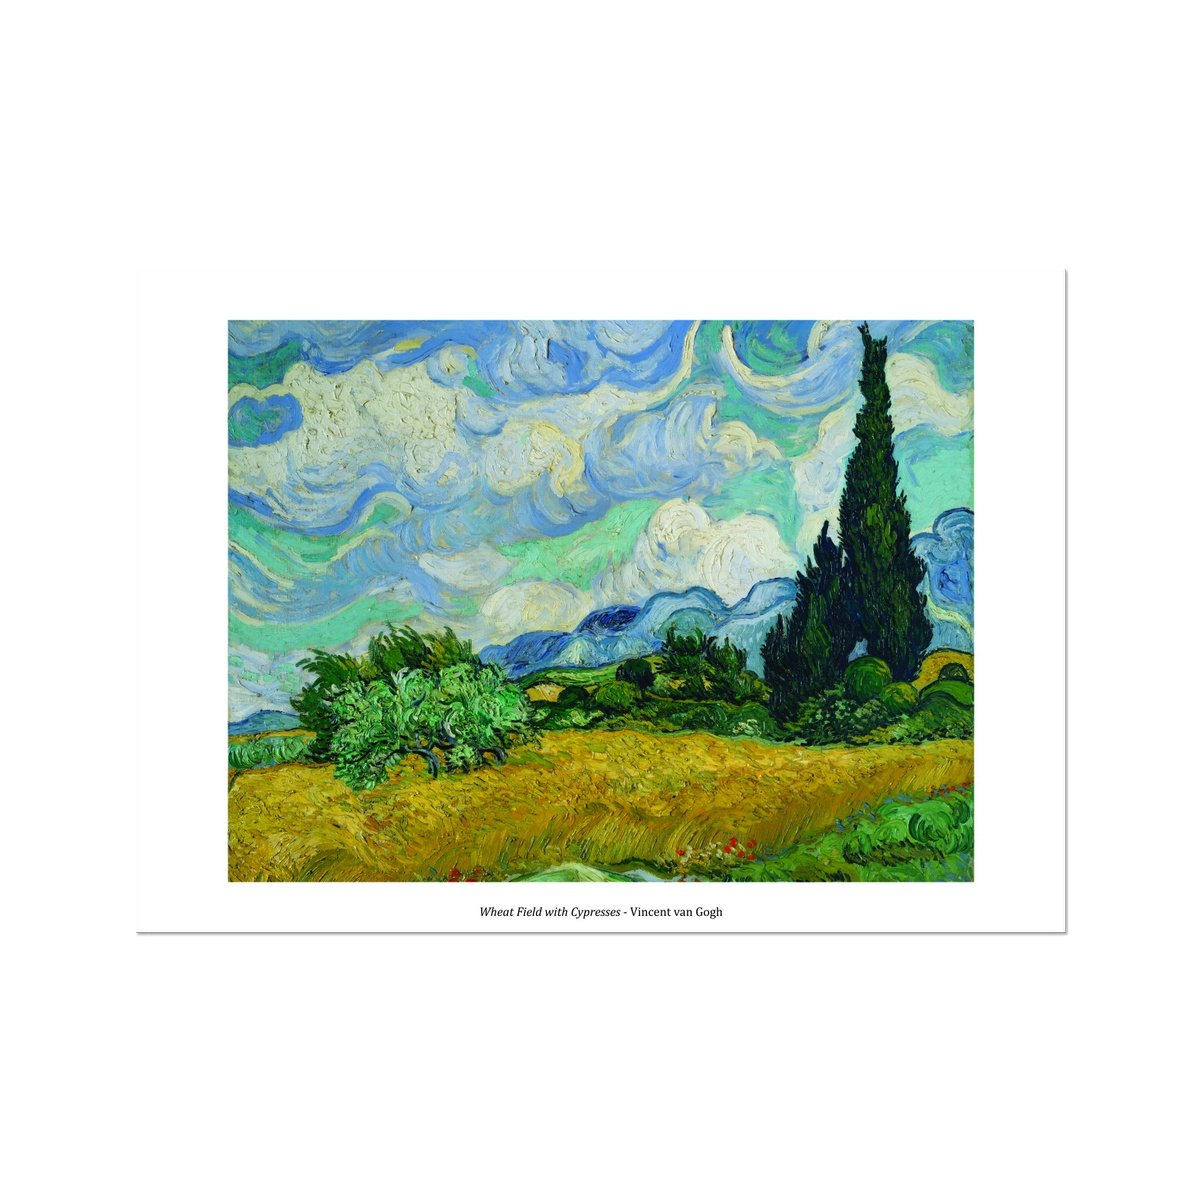 Wheat Field with Cypresses 1889 Vincent van Gogh - Framed Poster